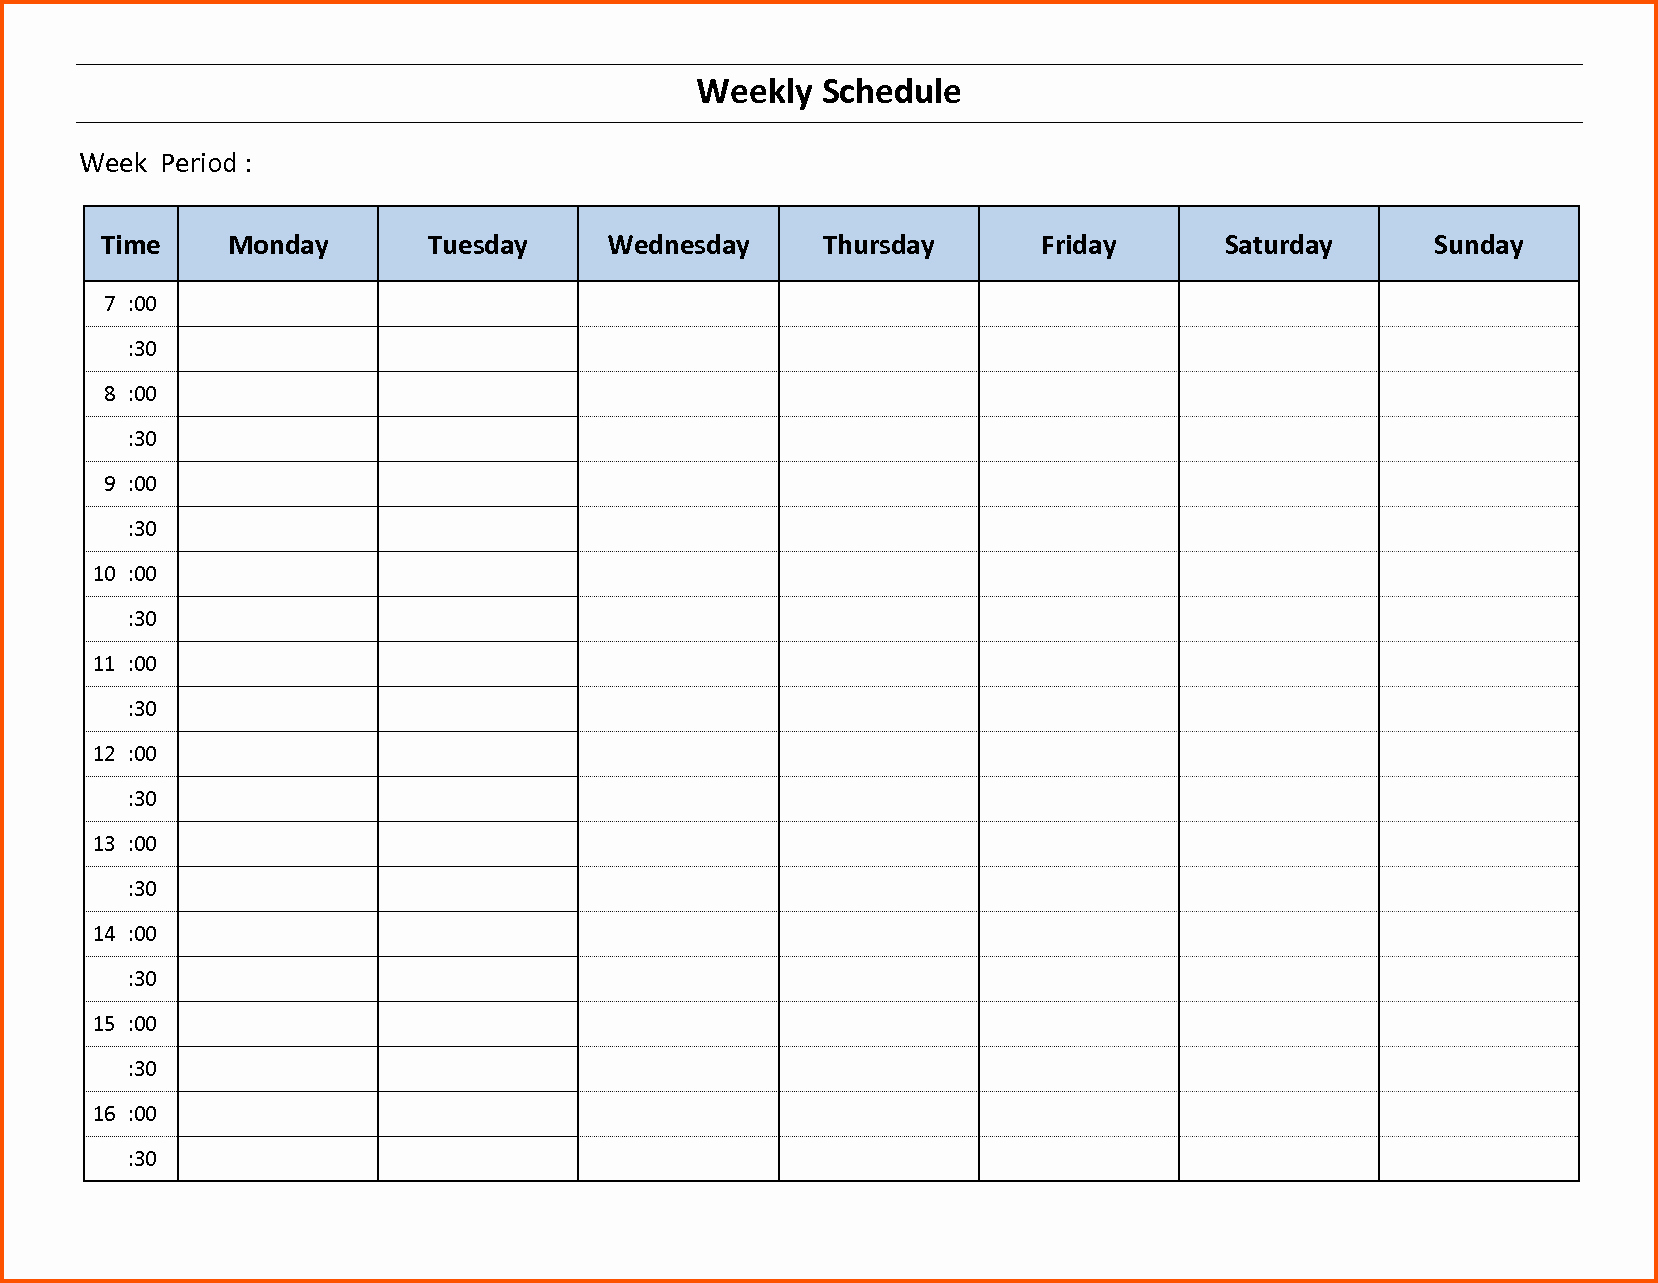 Employee Weekly Schedule Template Free Fresh 14 Free Weekly Schedule Template